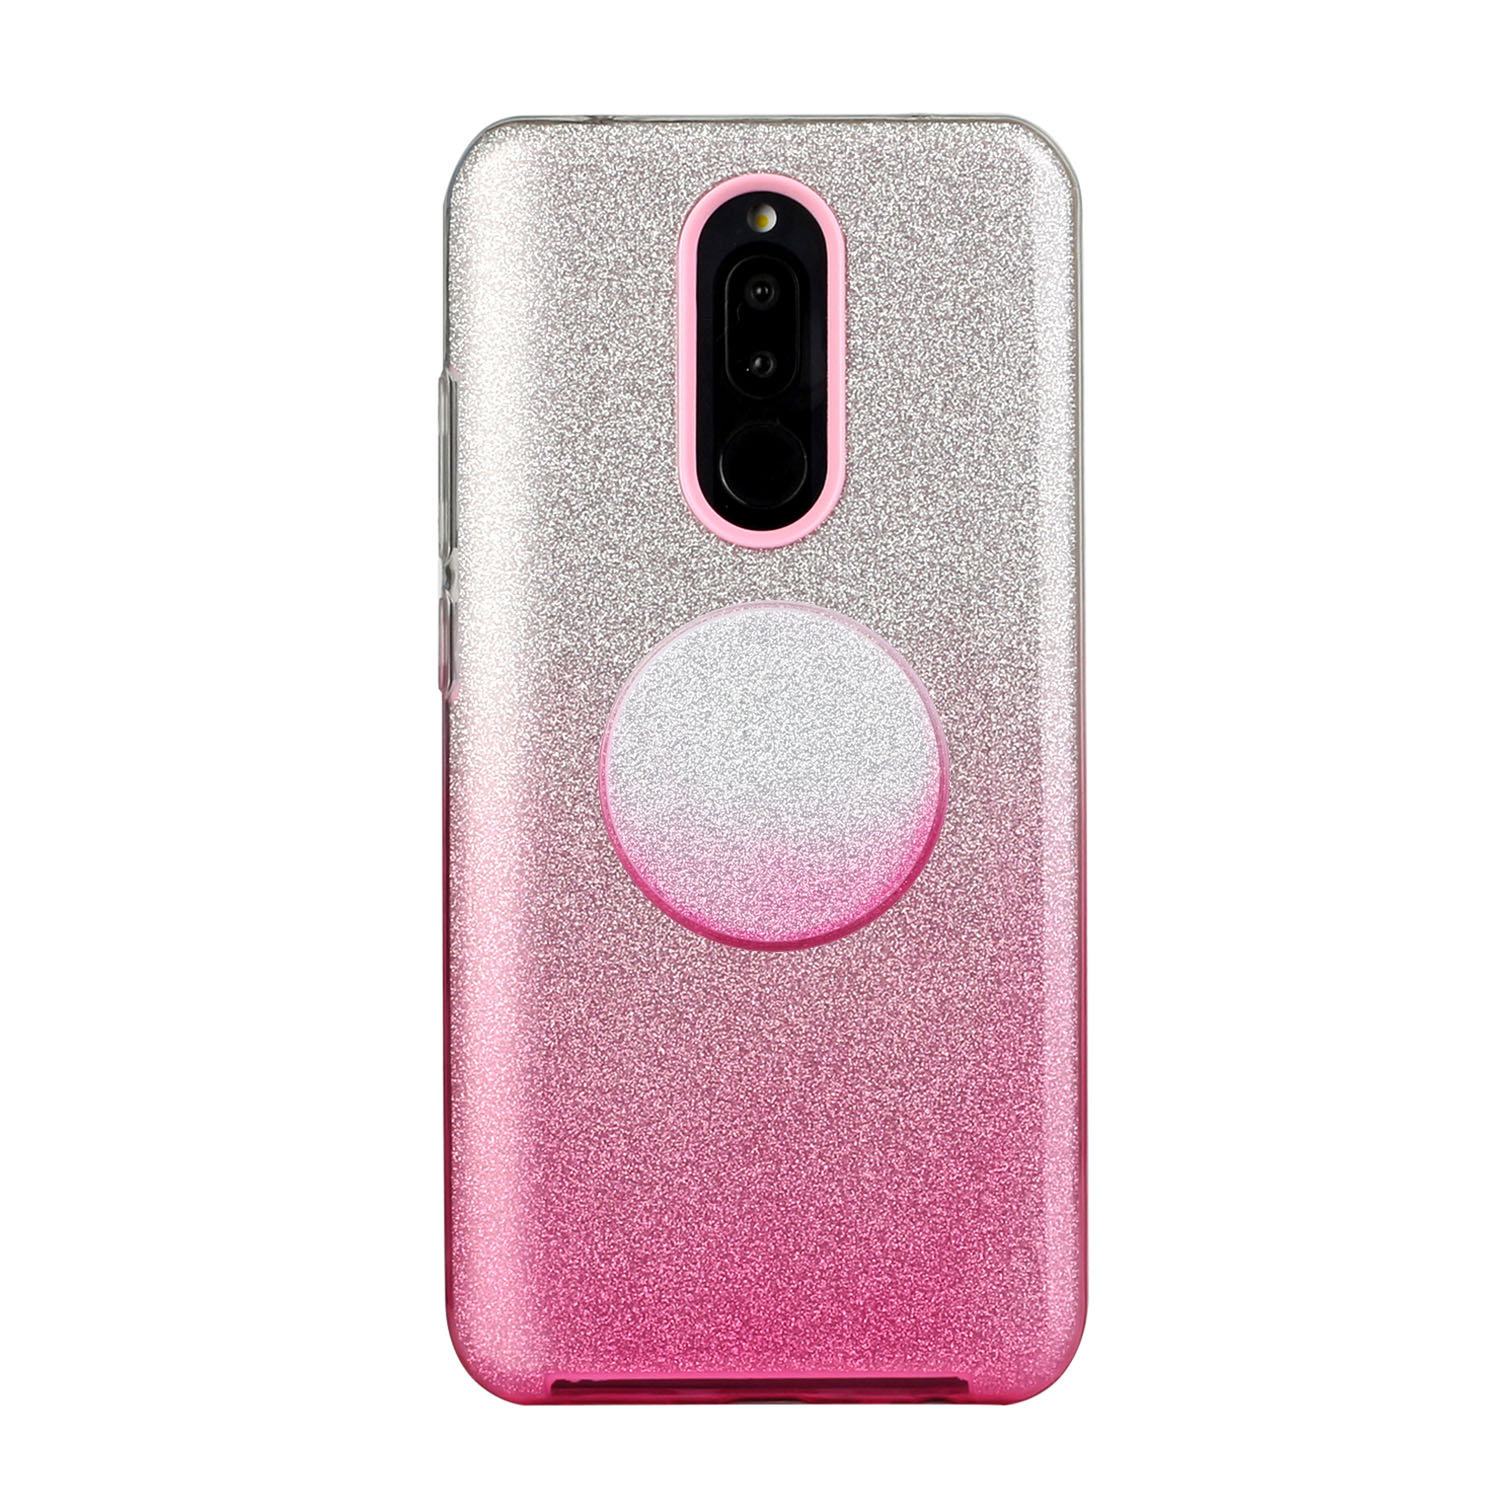 For OPPO F9/F9 Pro/A7X/F11 Pro/A8/A31 Phone Case Gradient Color Glitter Powder Phone Cover with Airbag Bracket Pink